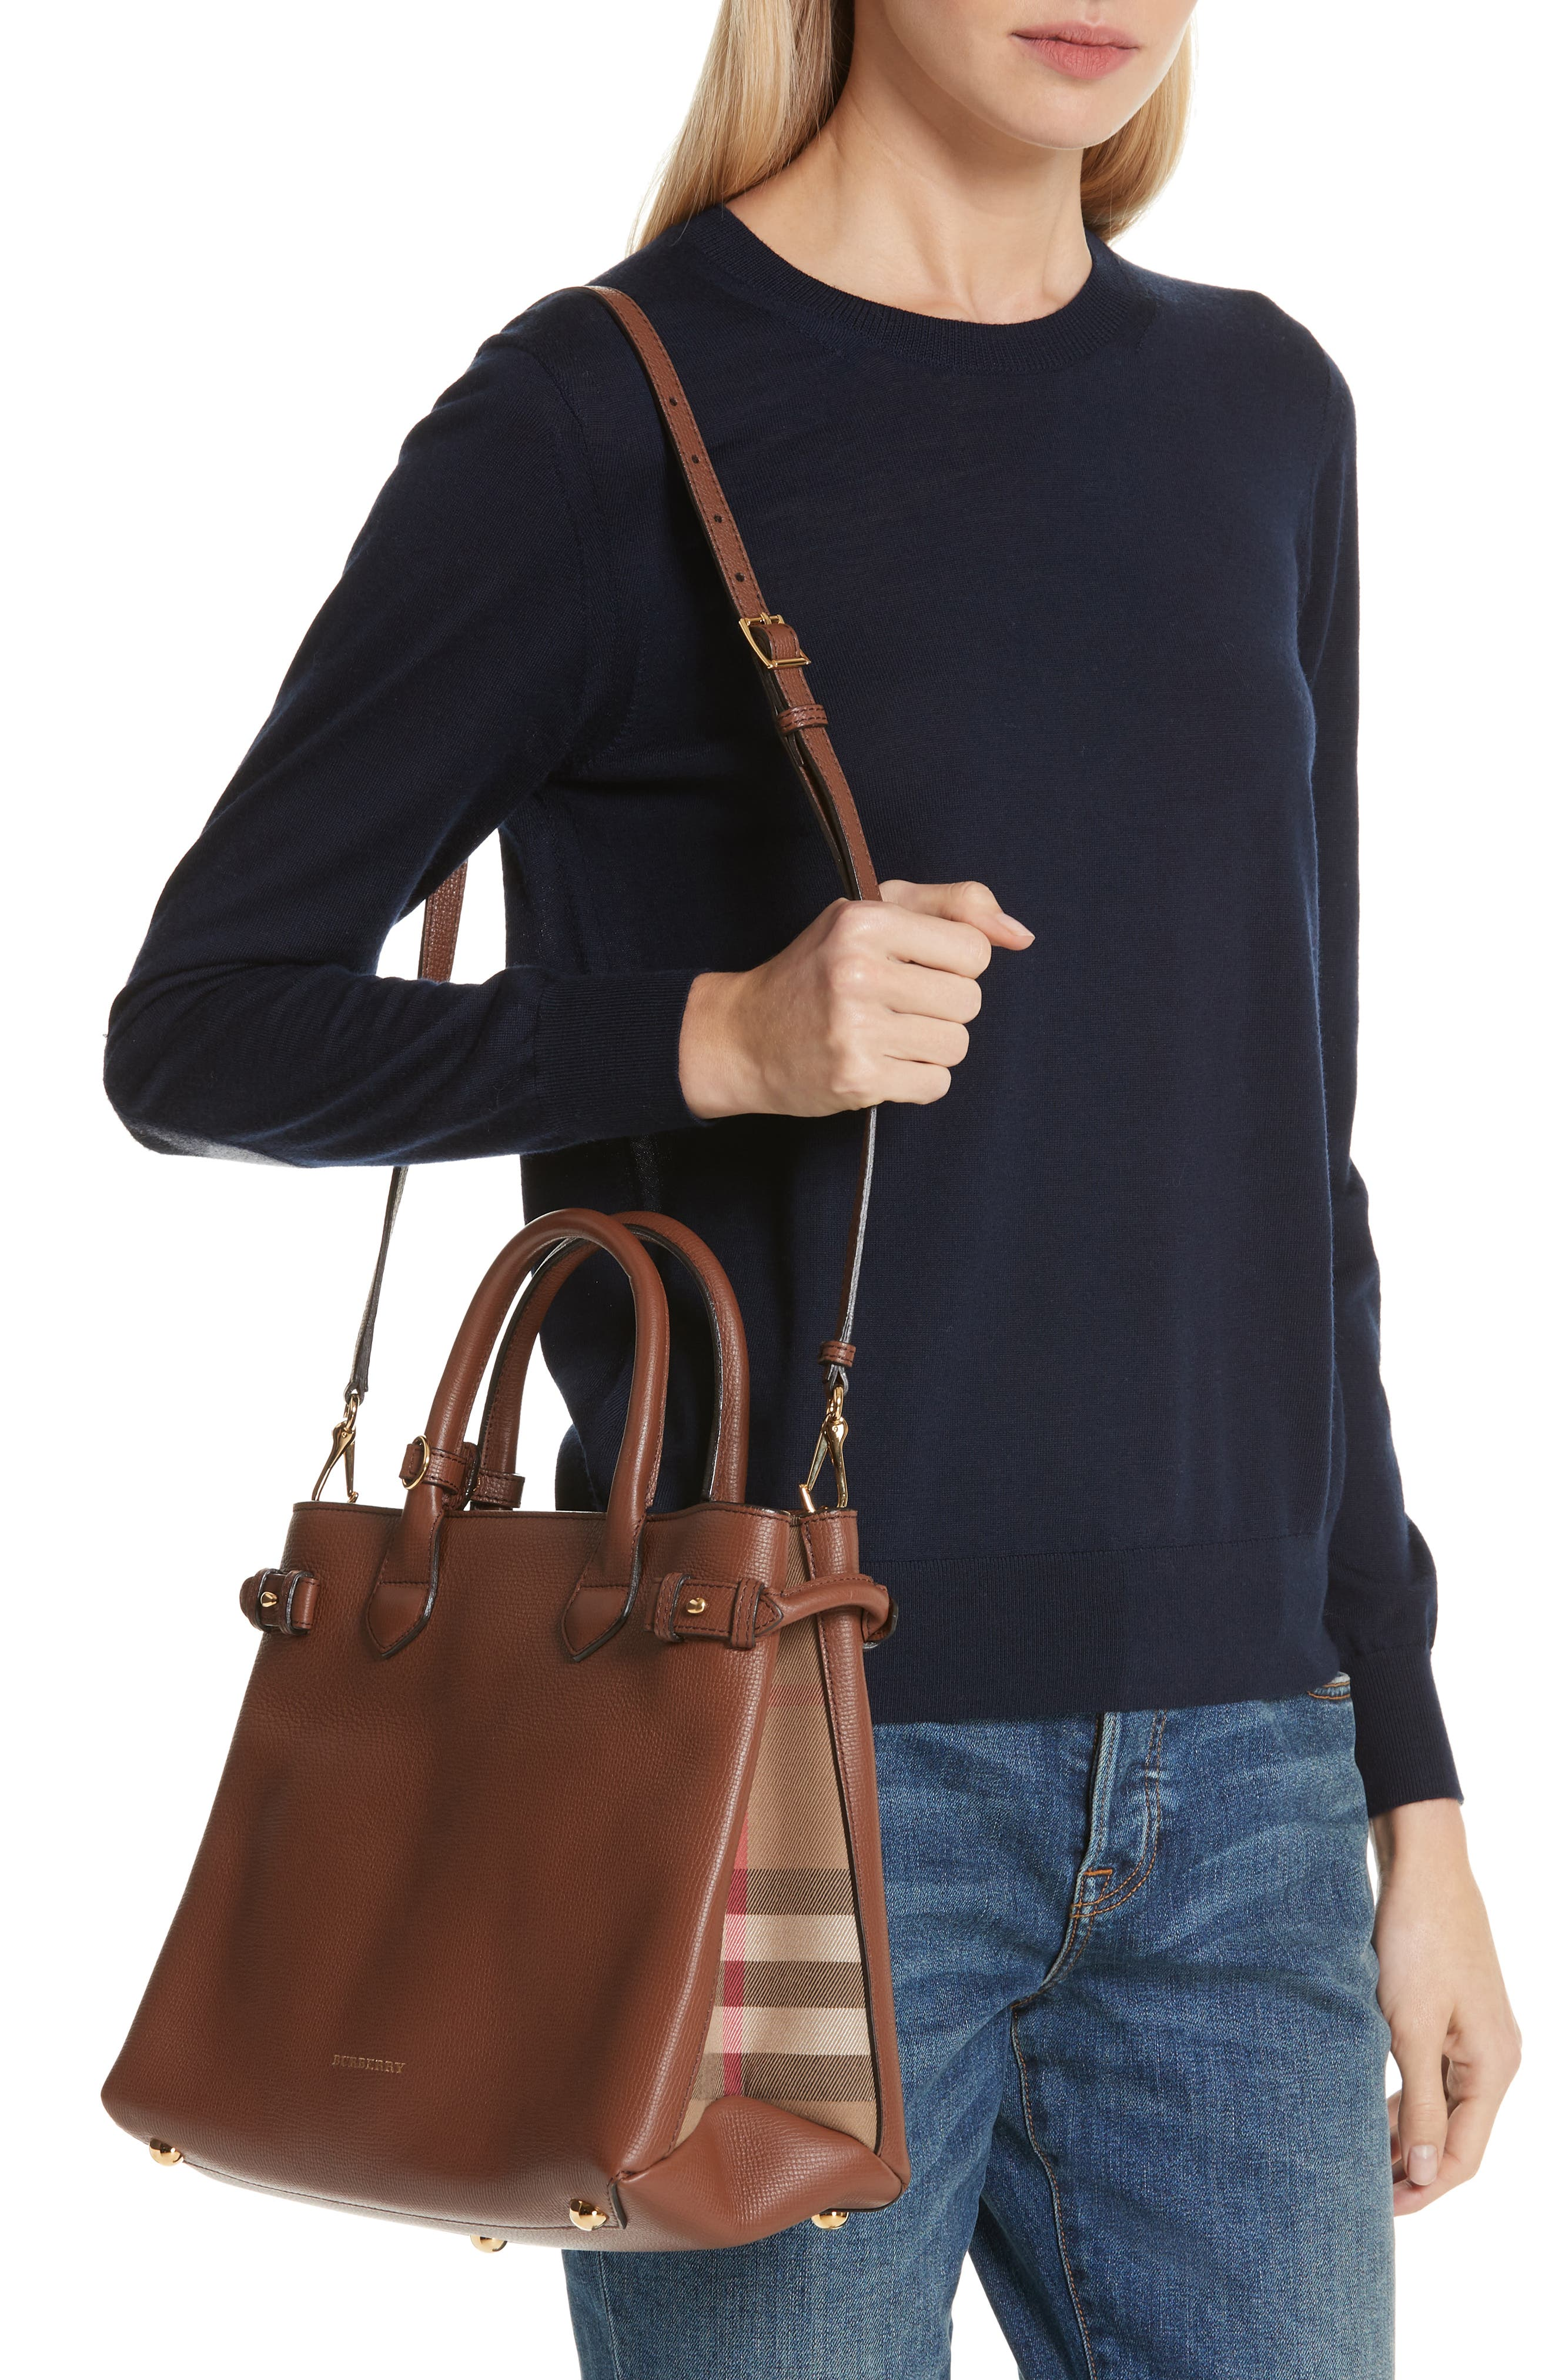 Medium Banner House Check Leather Tote,                             Alternate thumbnail 2, color,                             251